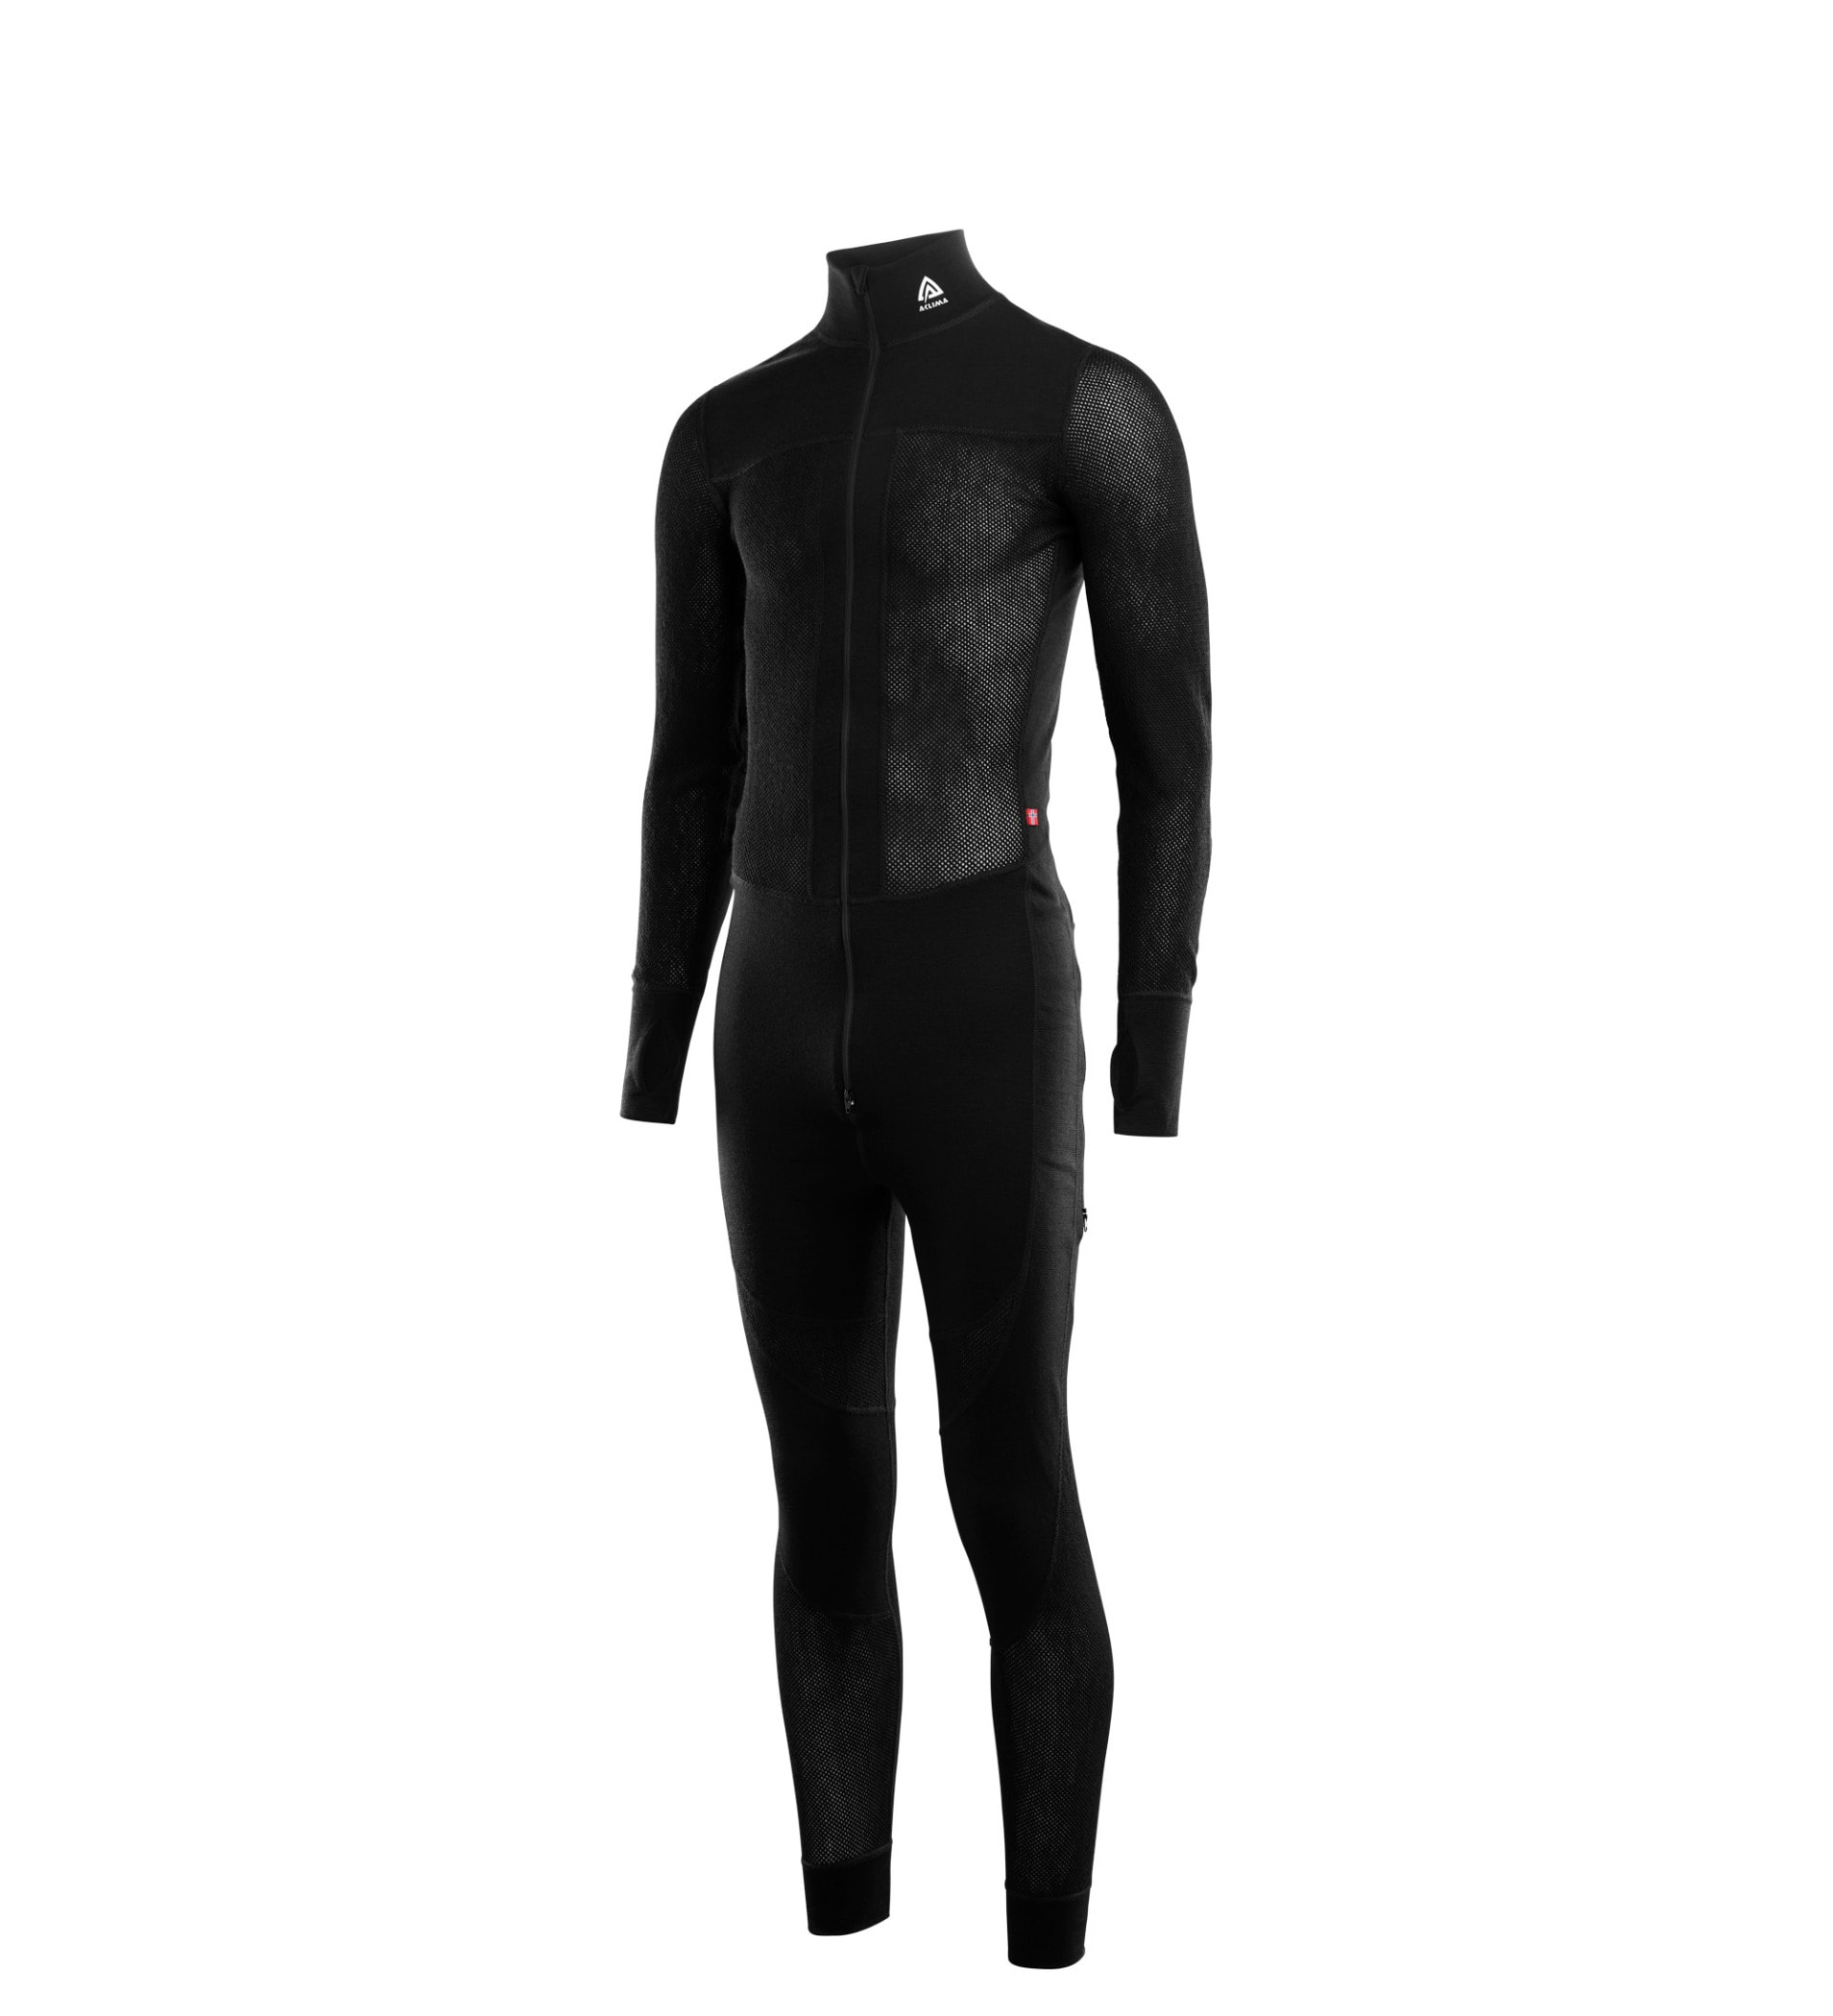 Personal protective equipment, Standing, Suit, Sportswear, Sleeve, Wetsuit, Clothing, Black